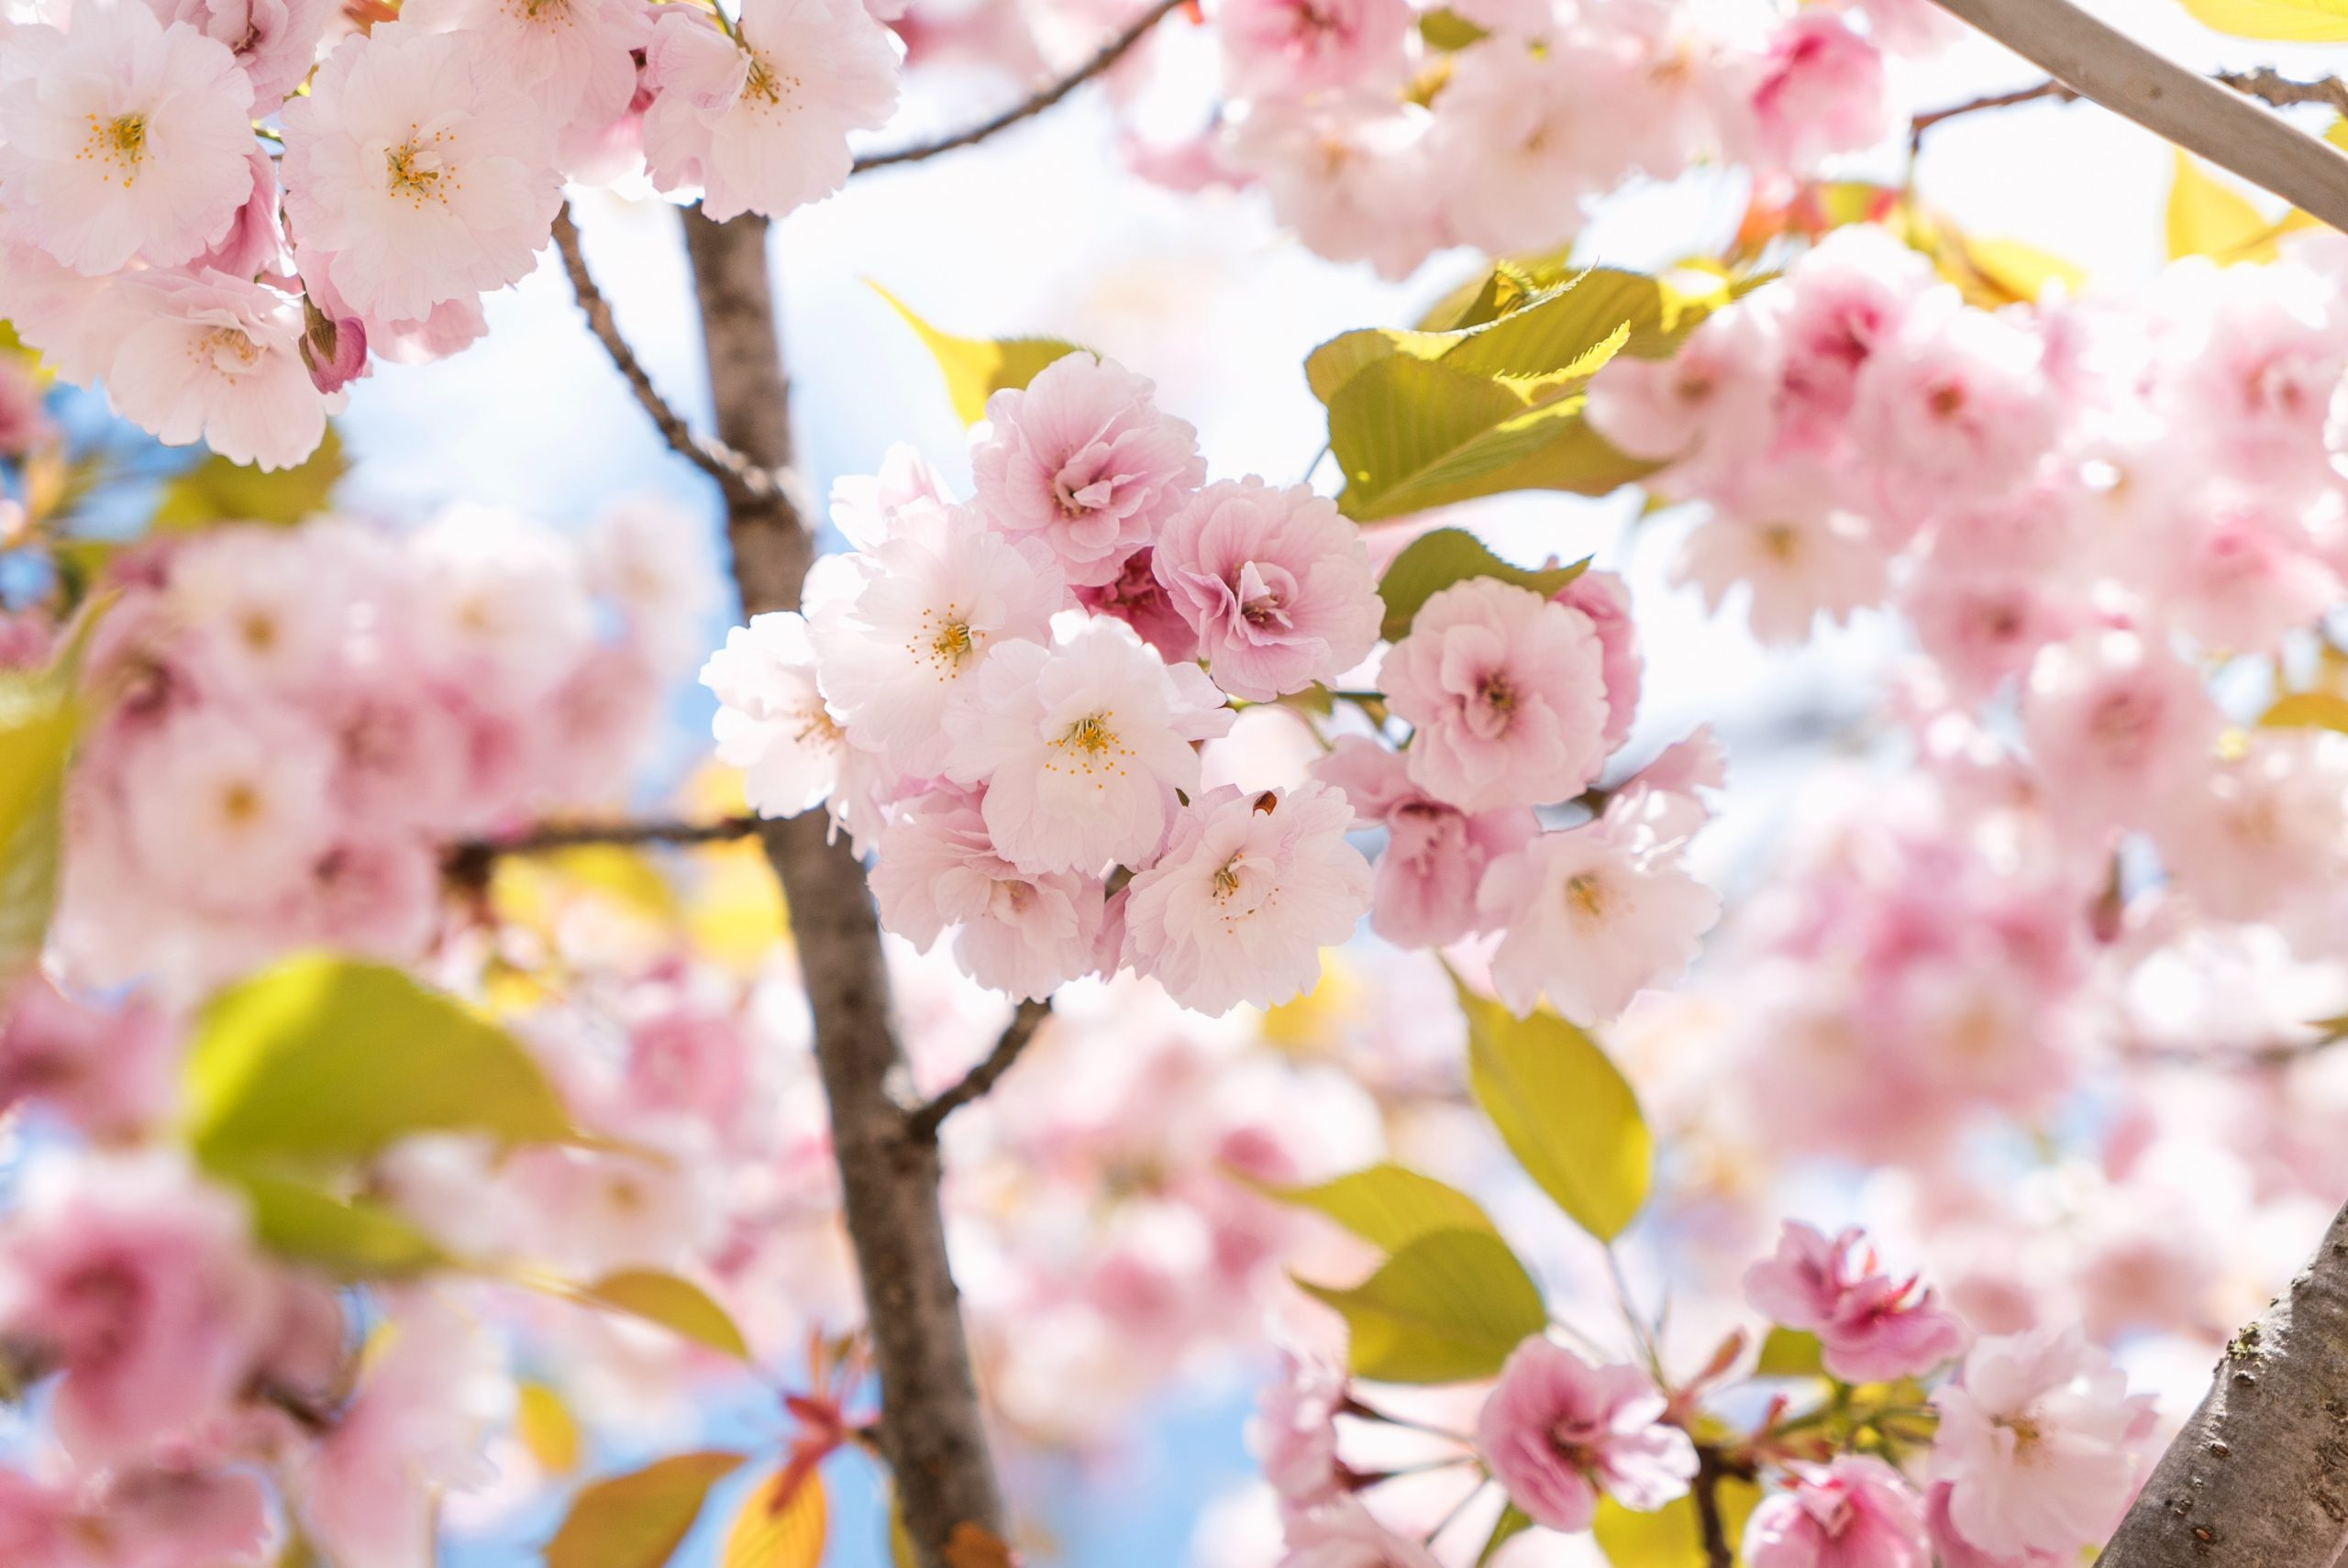 Spring blossoming flowers